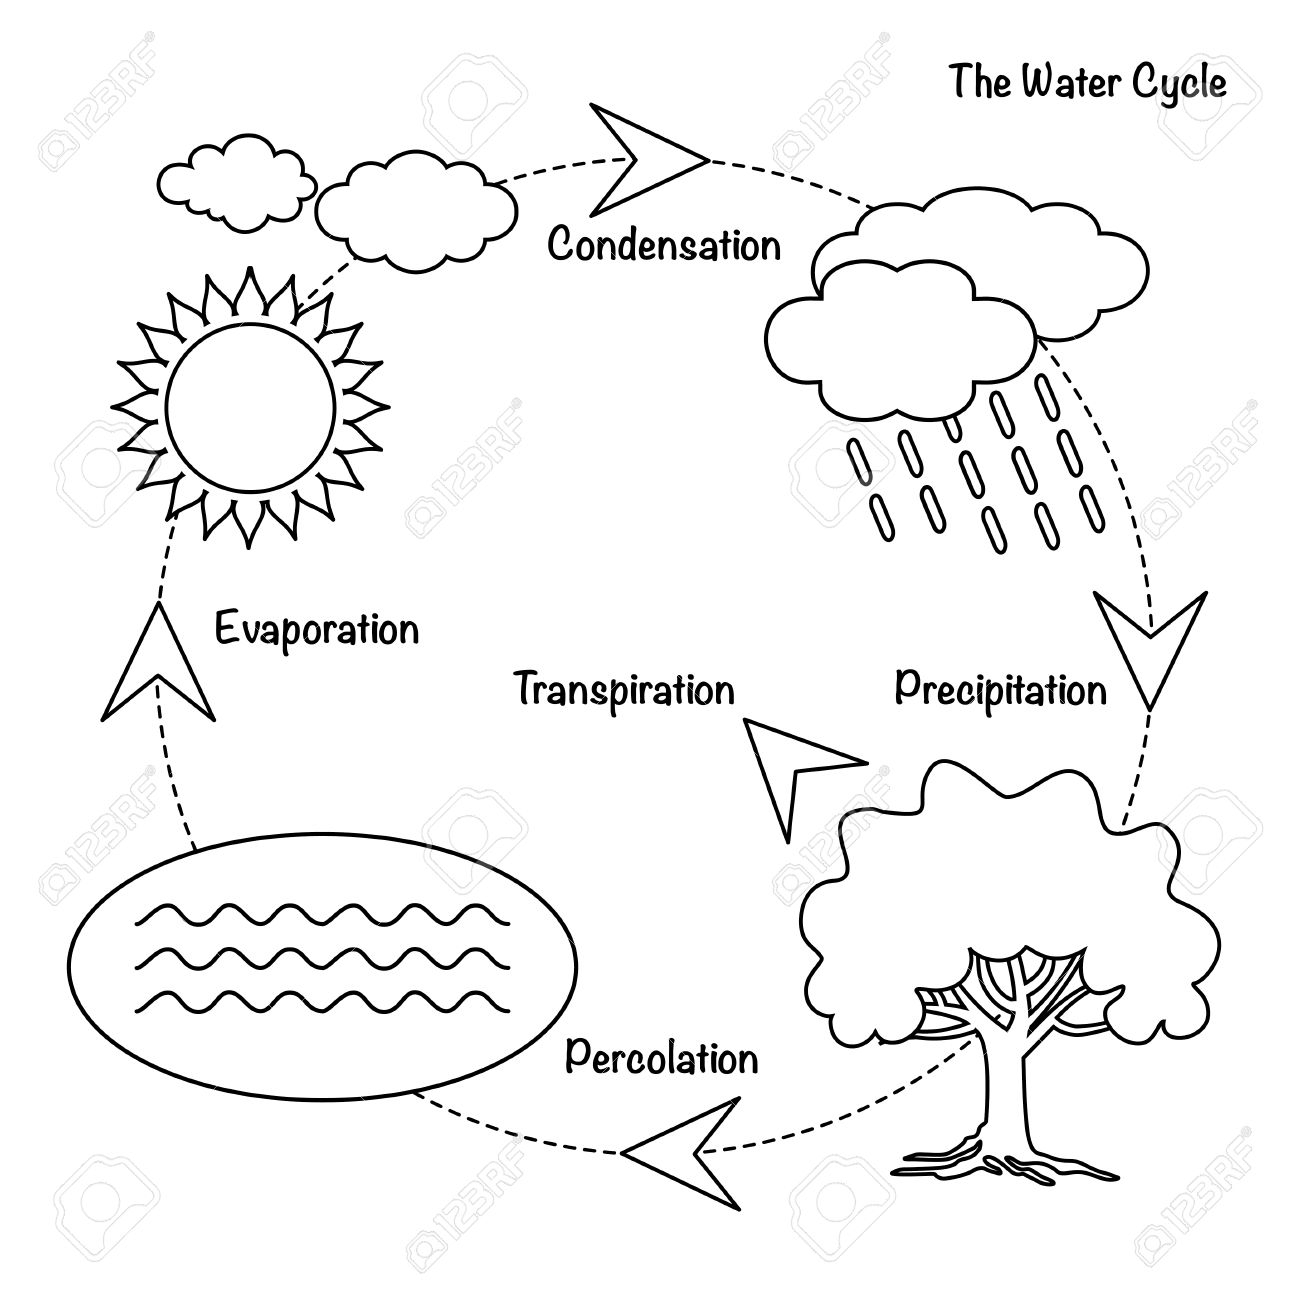 water cycle drawing assignment at getdrawings com